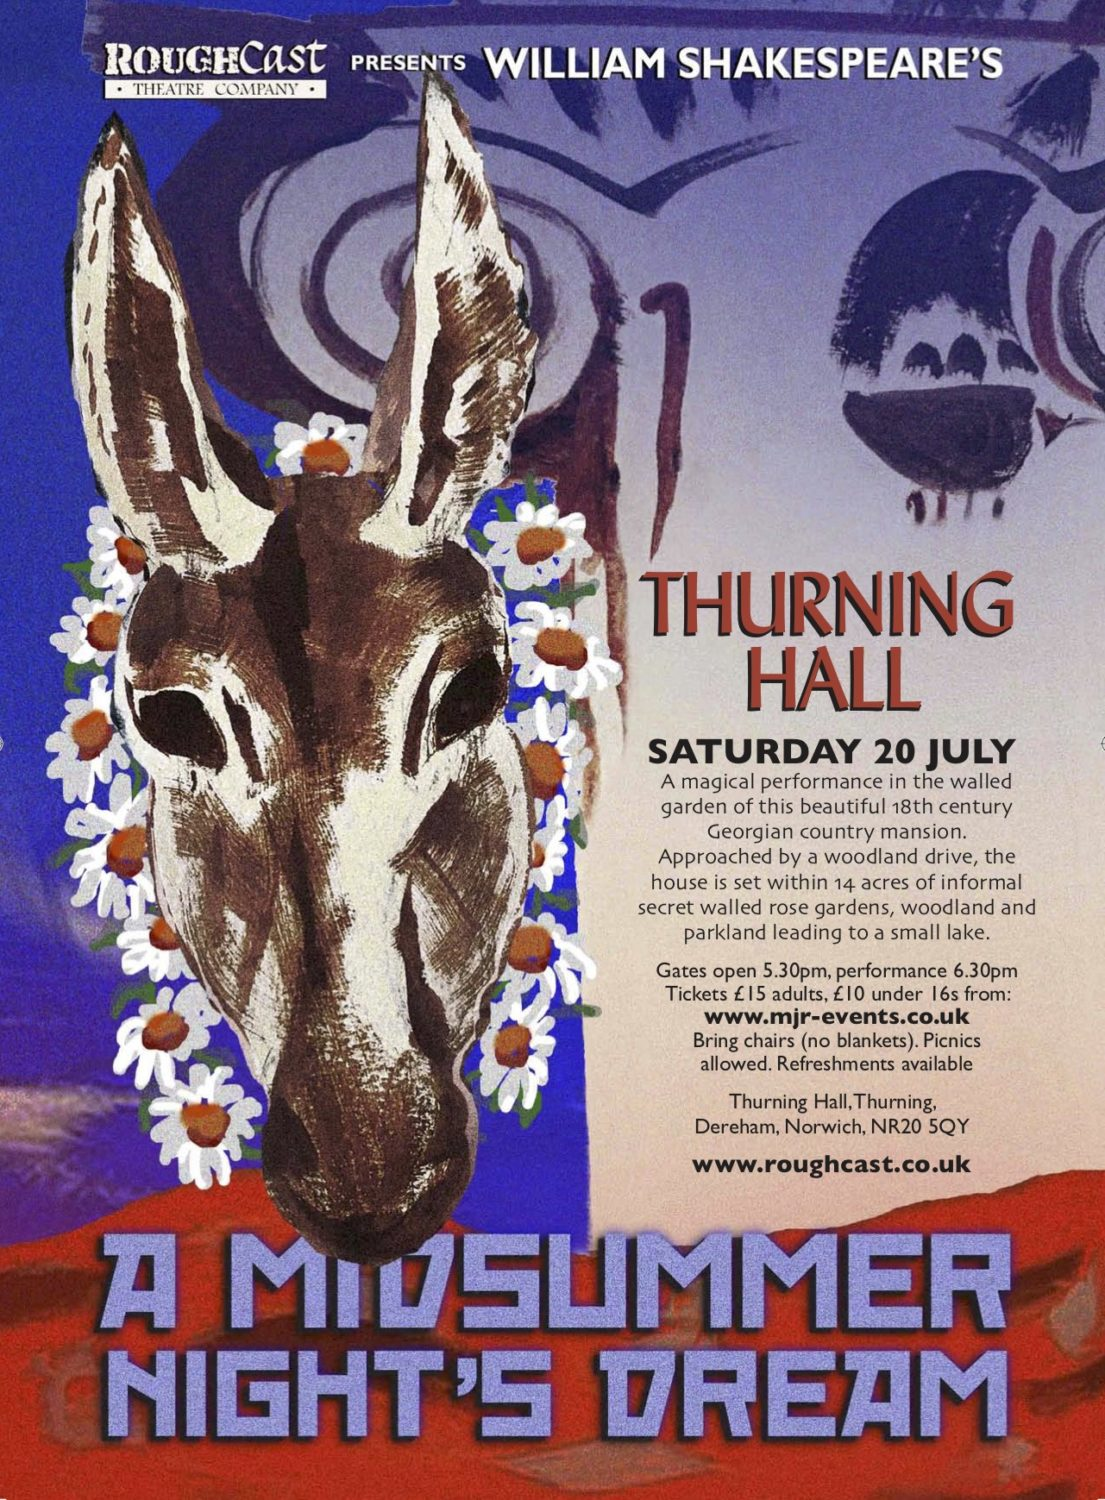 A Midsummer Night's Dream, Thurning Hall, Reepham Road, Thurning. NR20 5QY | Shakespeare's A Midsummer Night's Dream will be performed in the dreamy walled garden at Thurning Hall on Saturday 20th July 2019. | theatre, outdoors, shakespeare